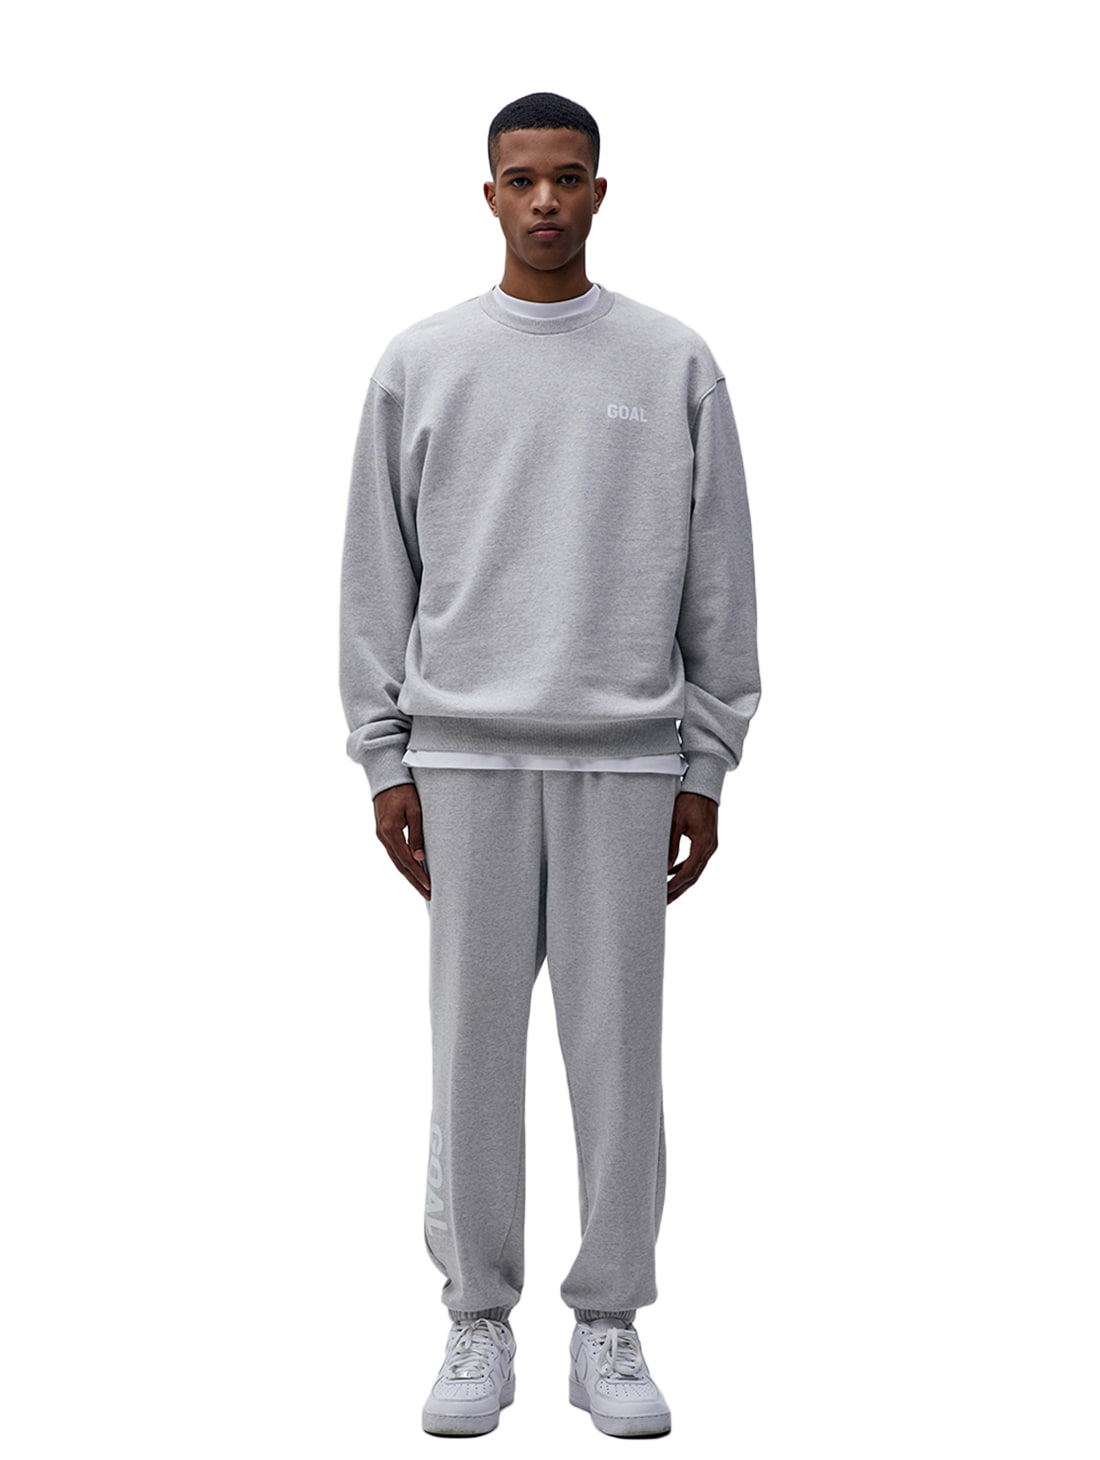 [10% OFF] FLOCKING SWEATSHIRT & PANTS SET - GREY